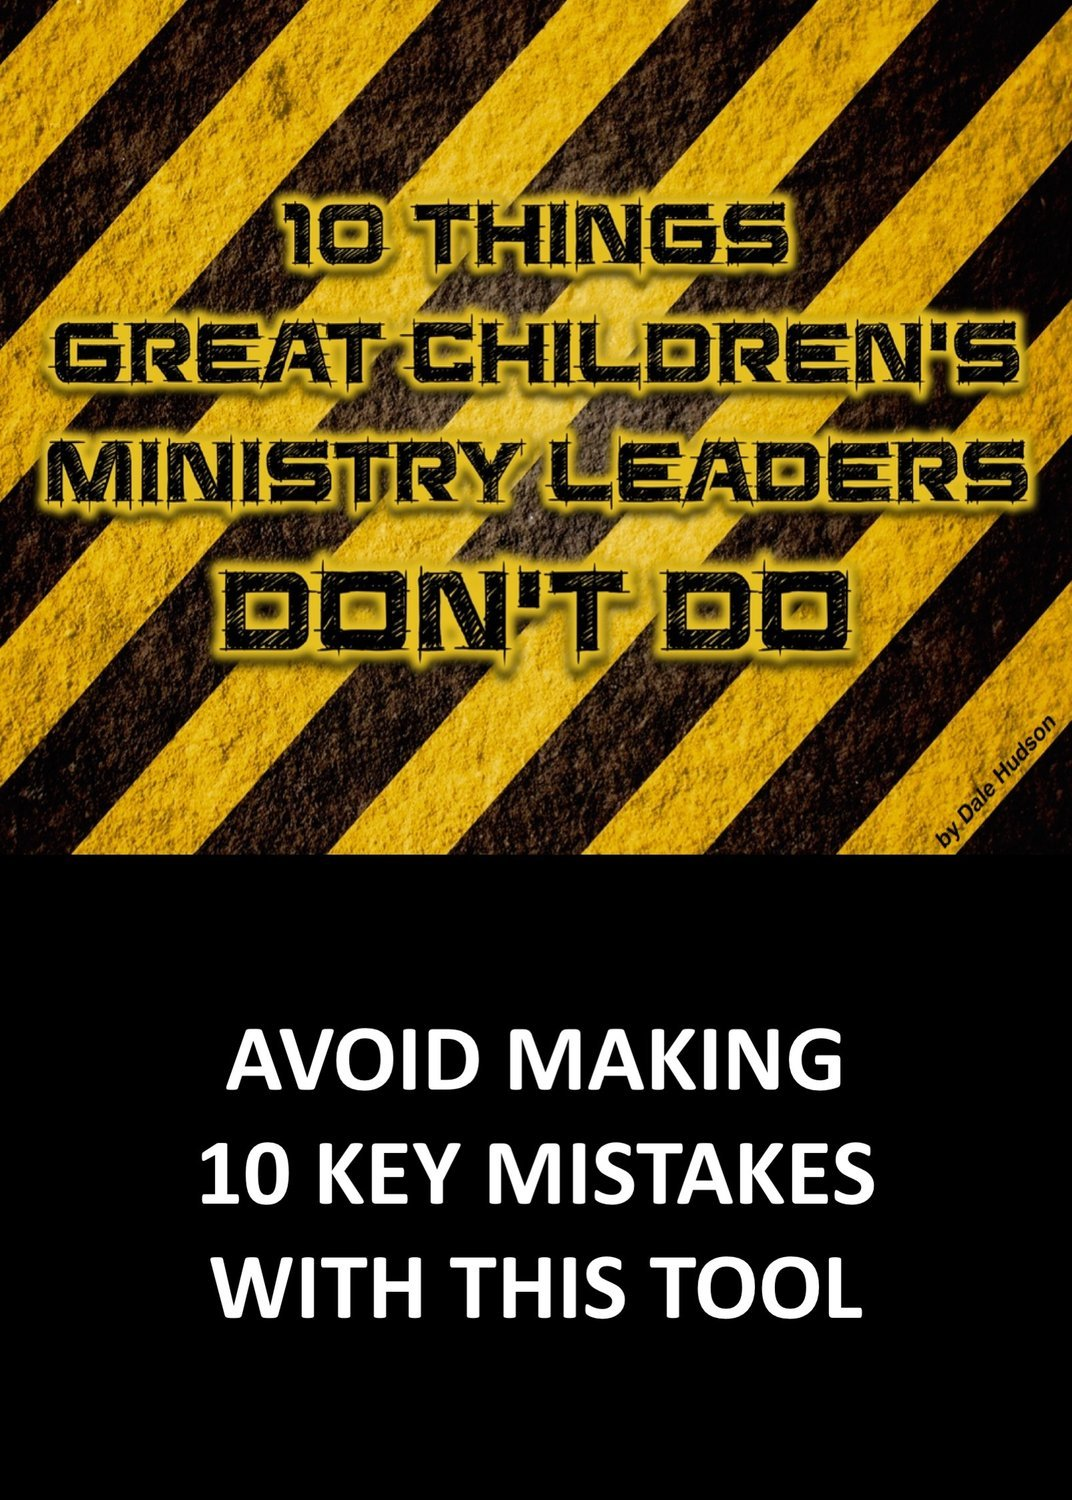 10 Things Great Children's Ministry Leaders DON'T Do